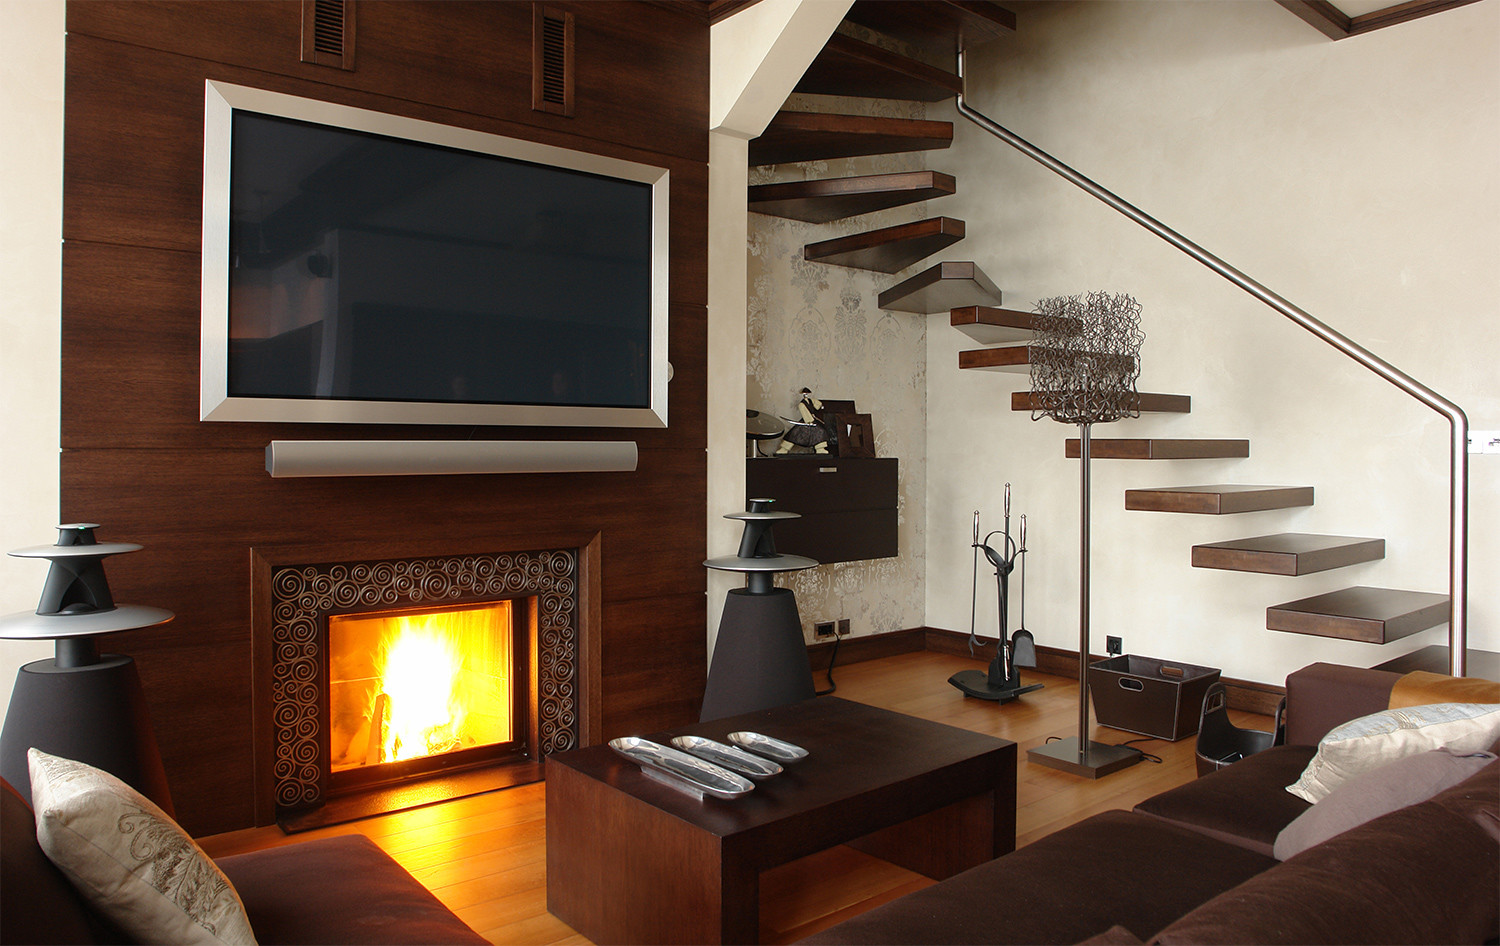 Four reasons not to slap that flatscreen TV over your fireplace  Digital Trends